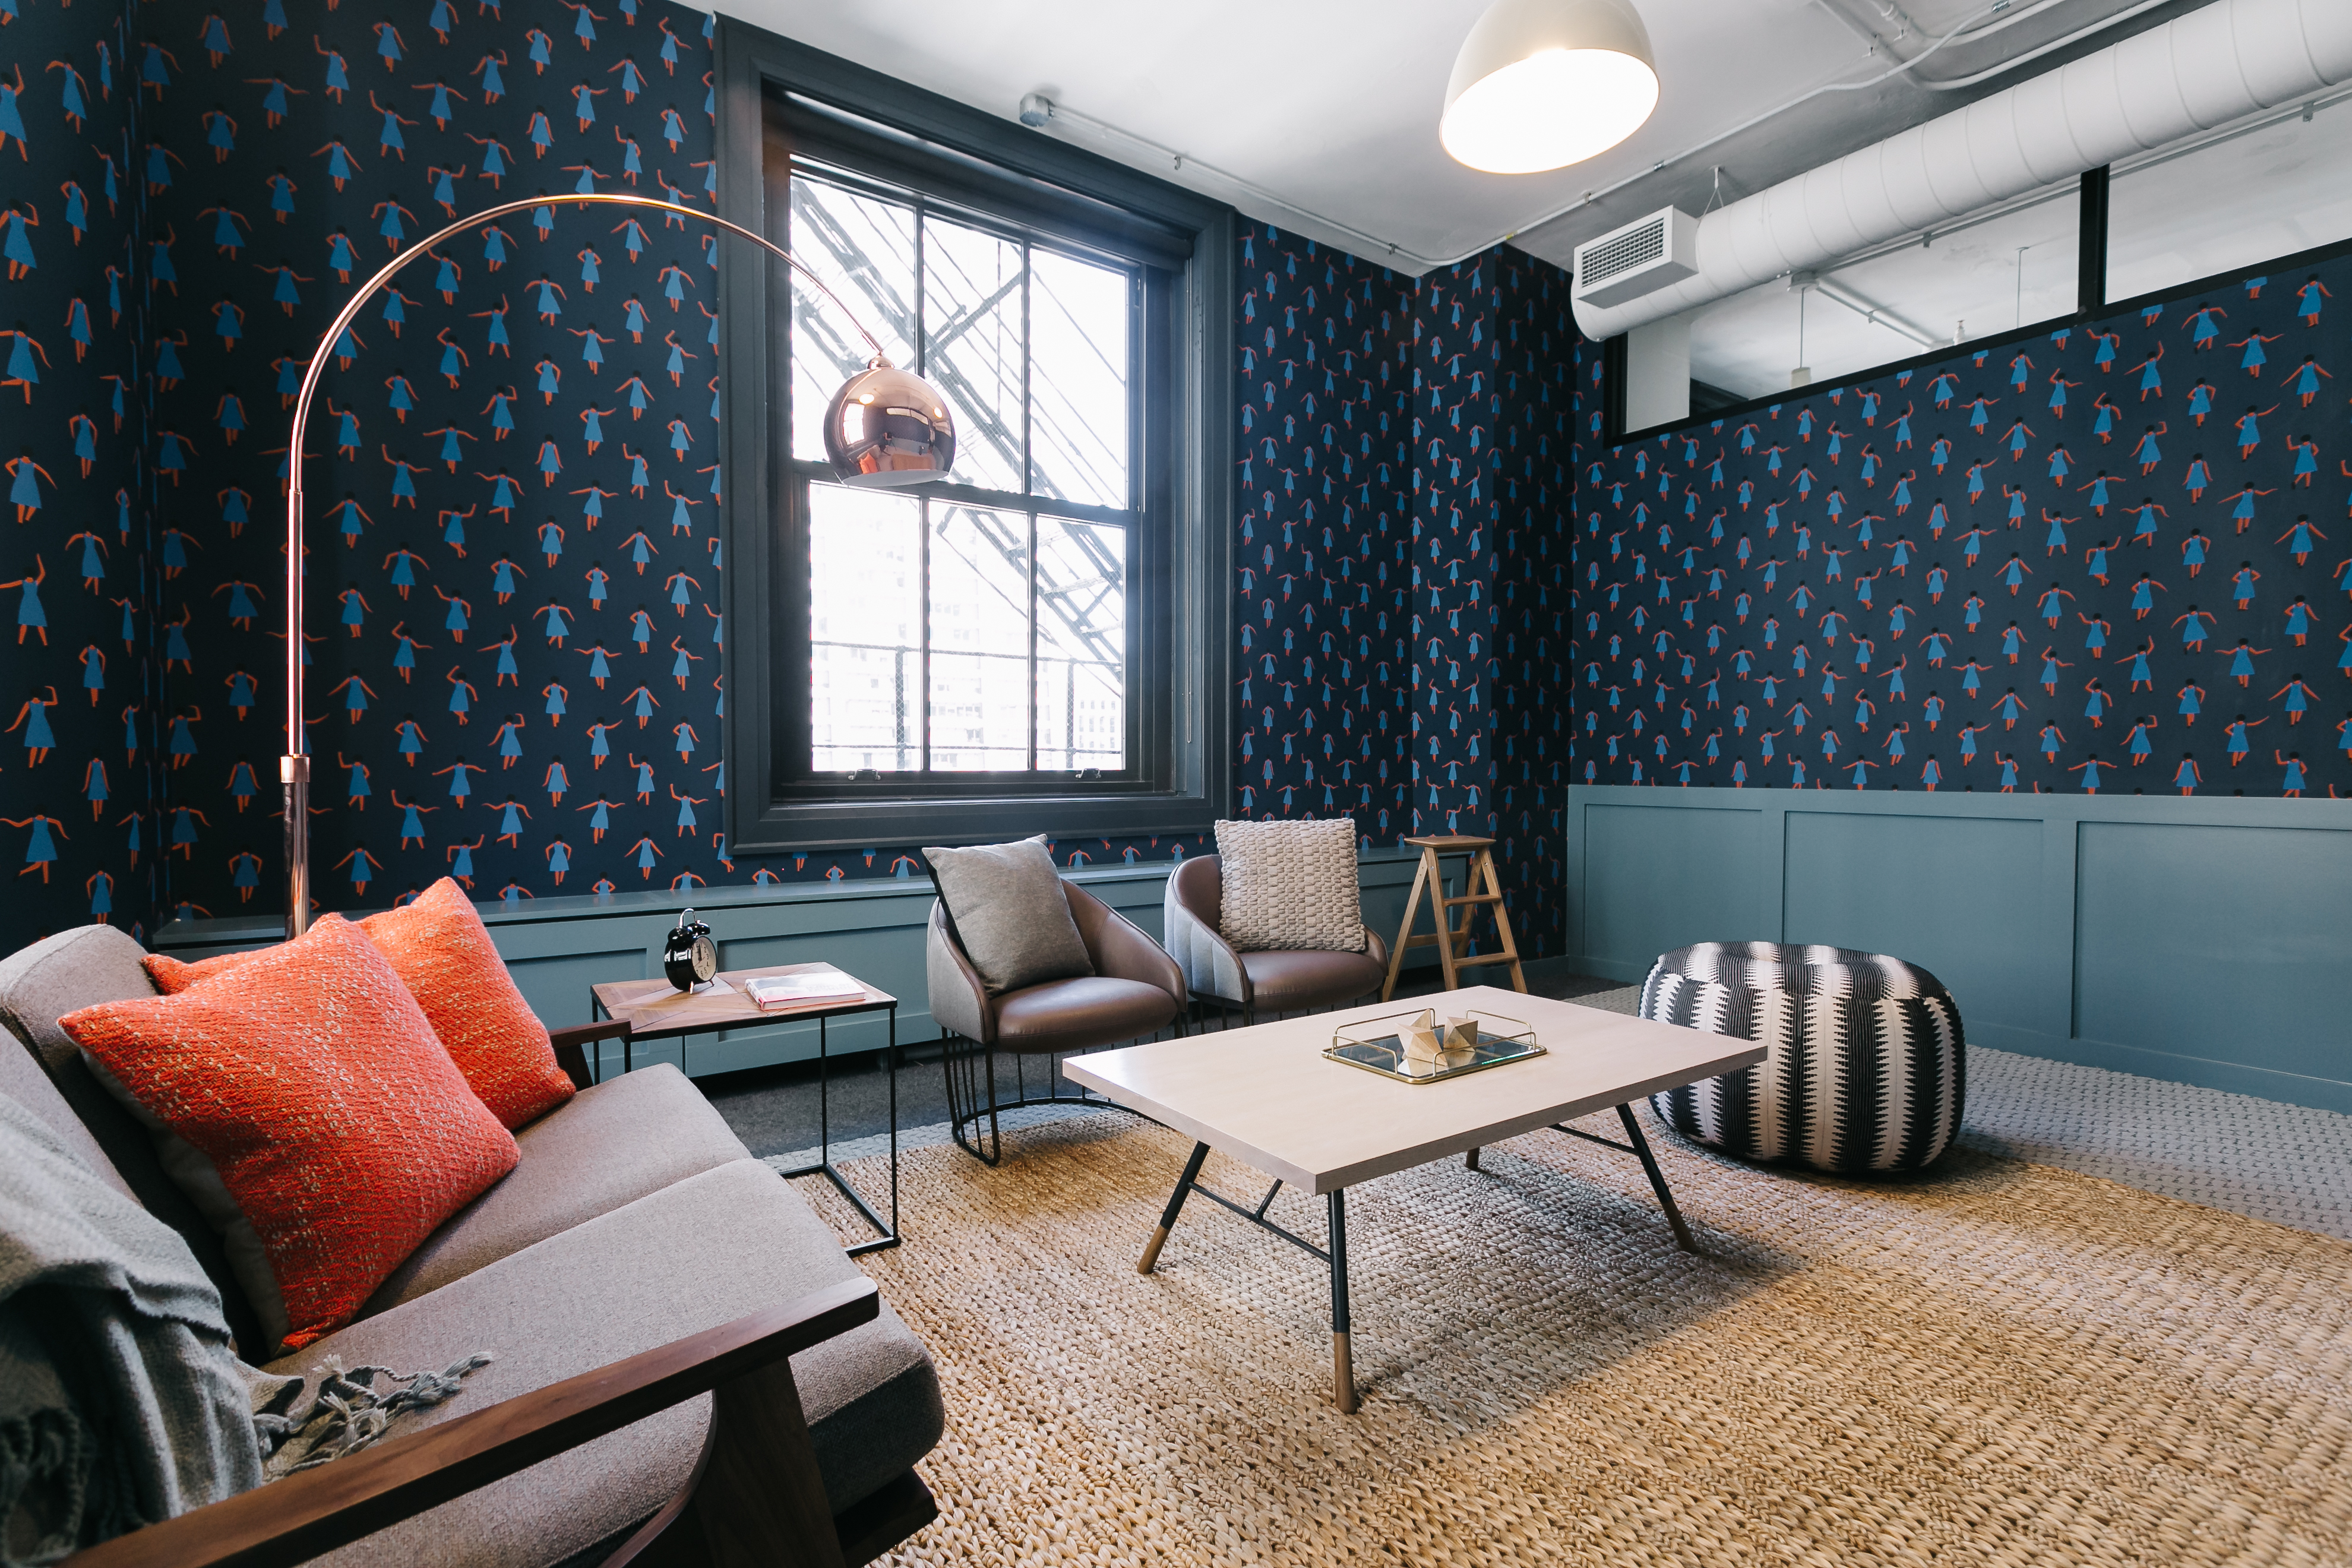 Interior Design Chicago Cool The Design Center At The Merchandise Mart Shop The Worldus With